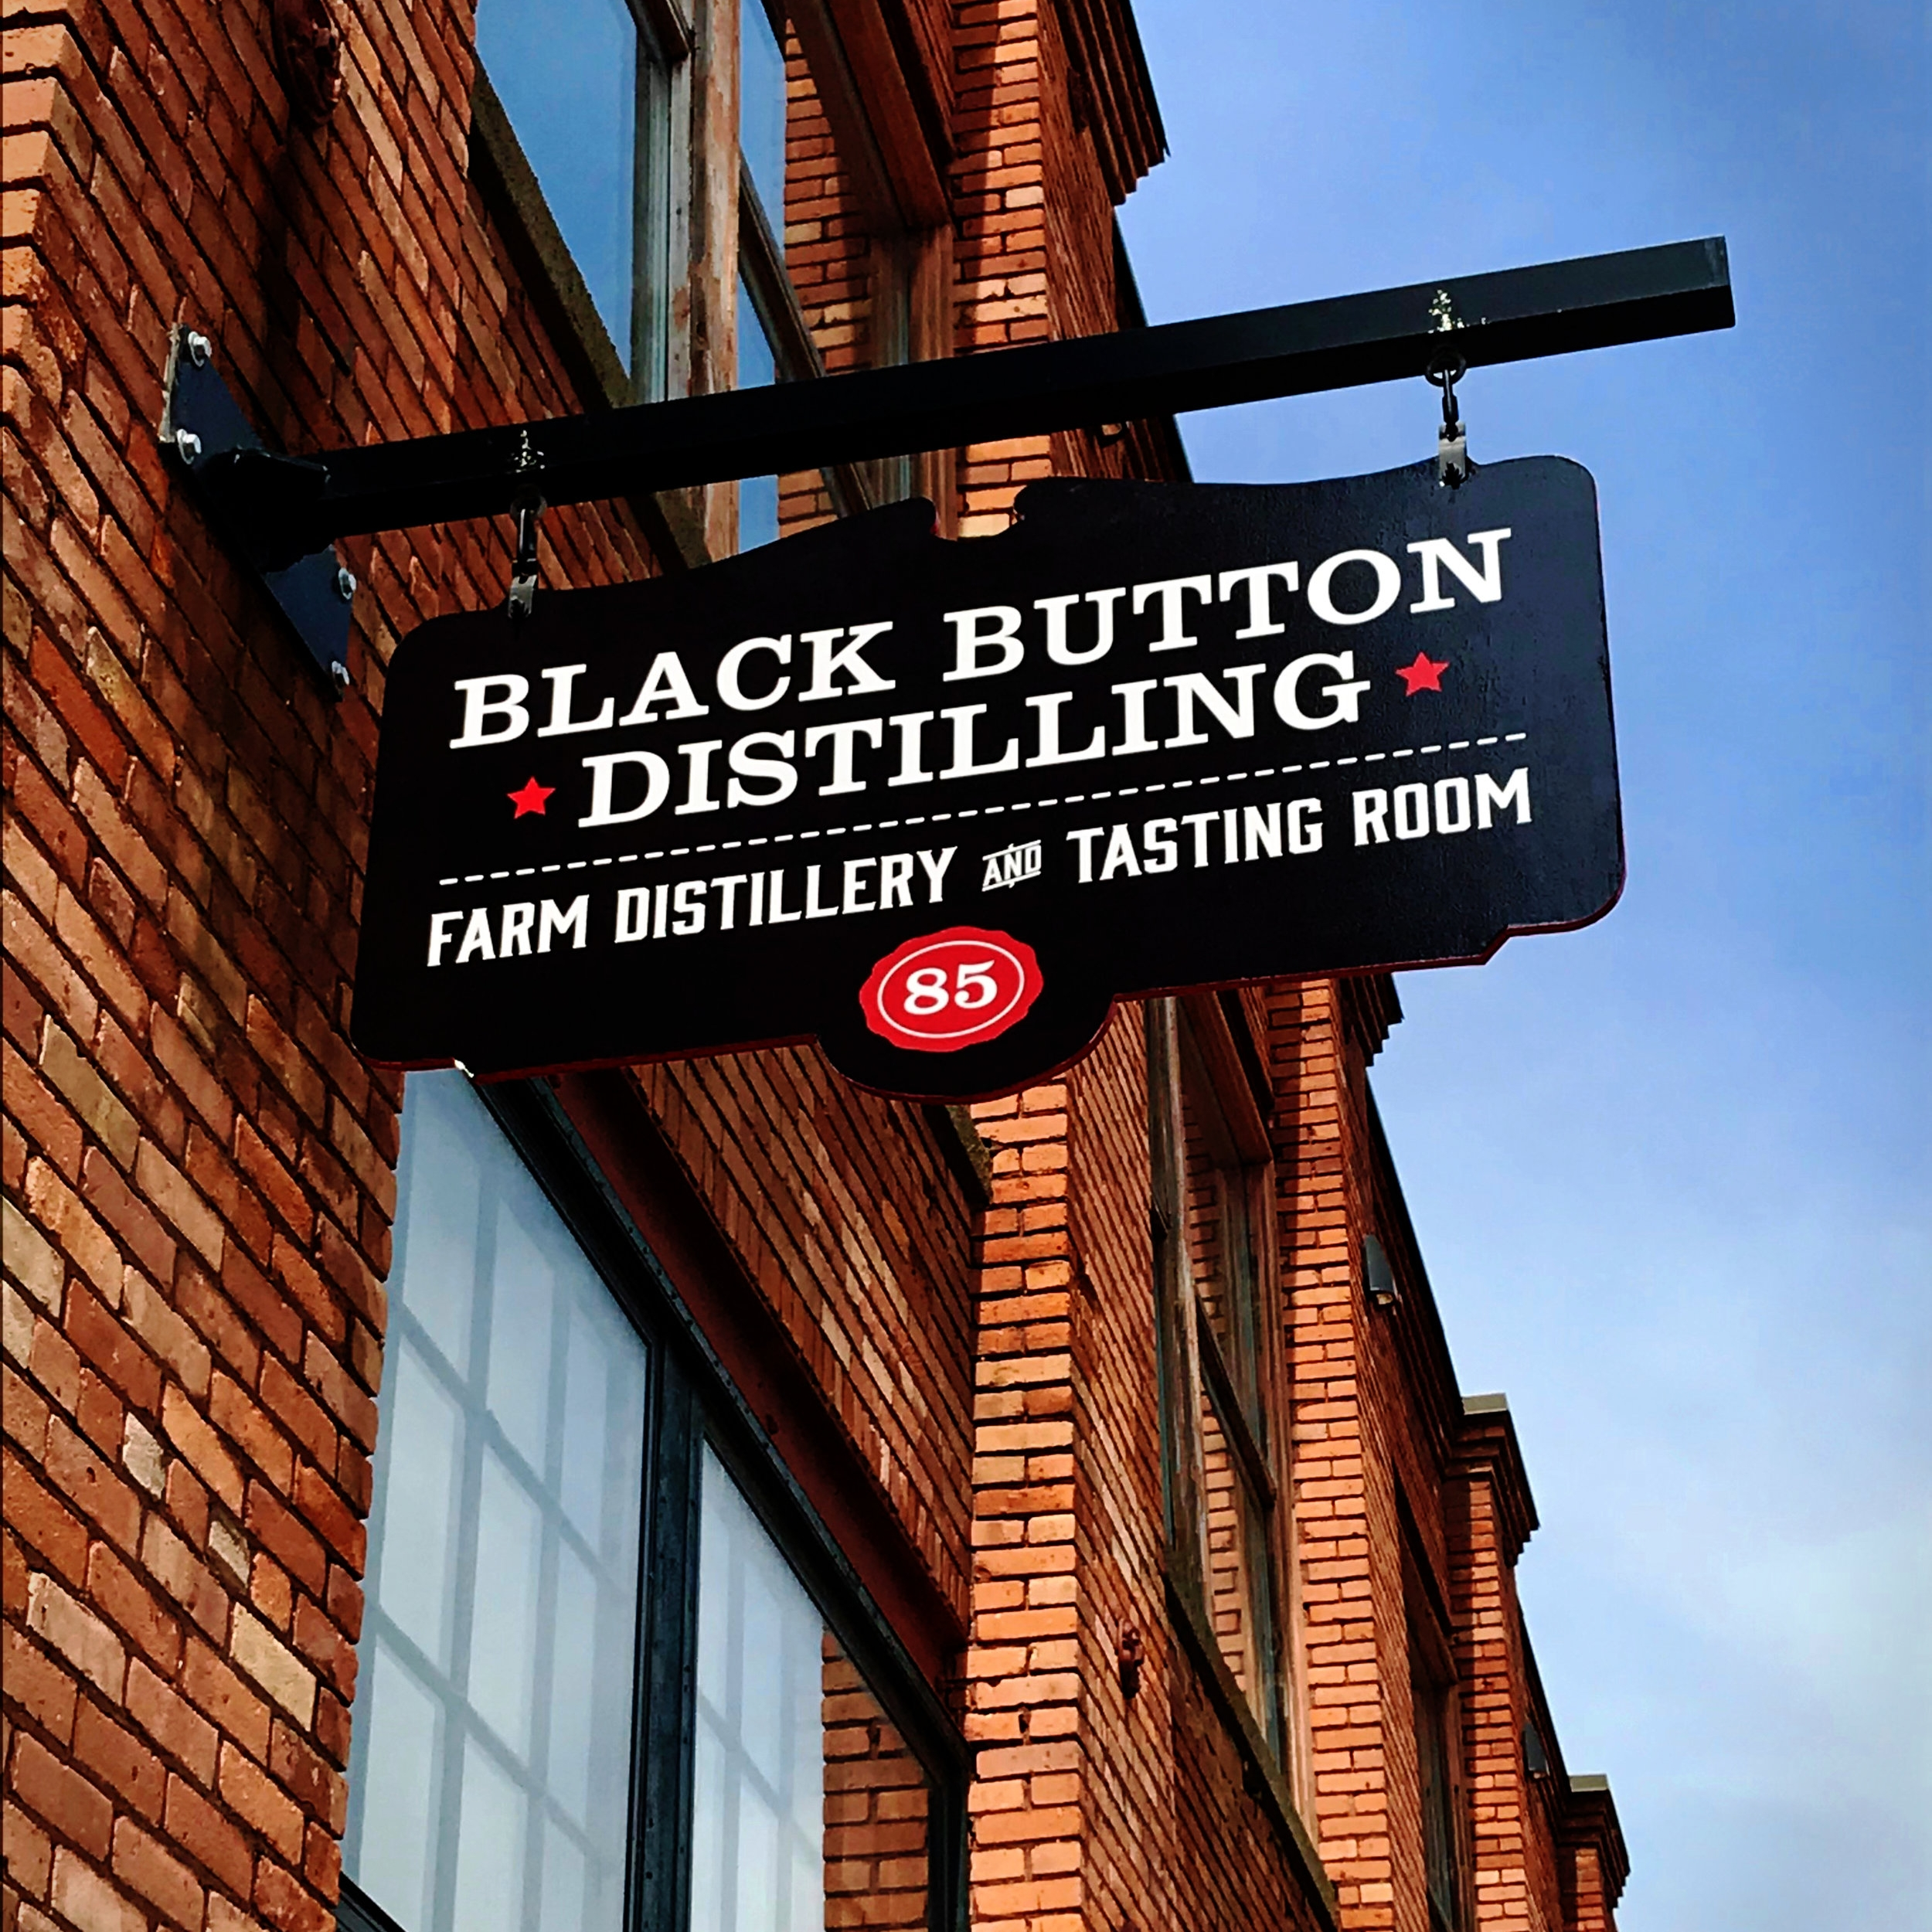 Black Button Distilling Farm Distillery and Tasting Room sign outside of Railroad Street